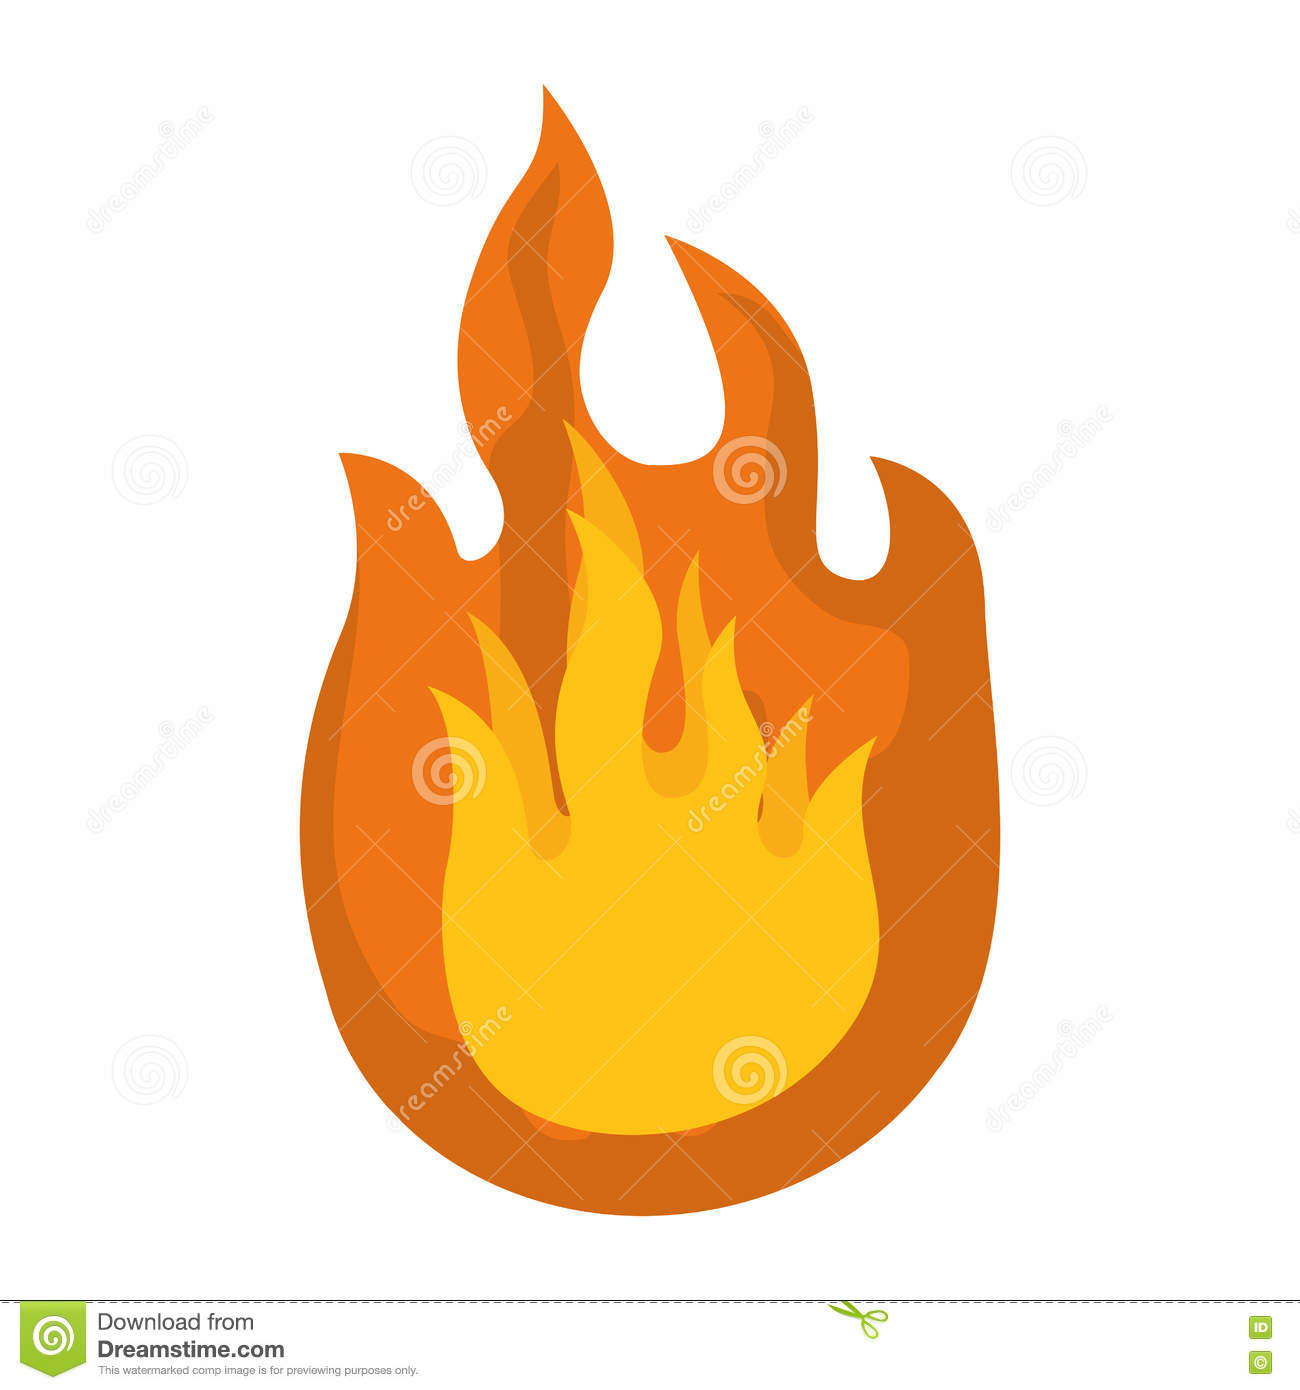 Icone Du Feu Conception De Flamme Dessin De Vecteur Illustration